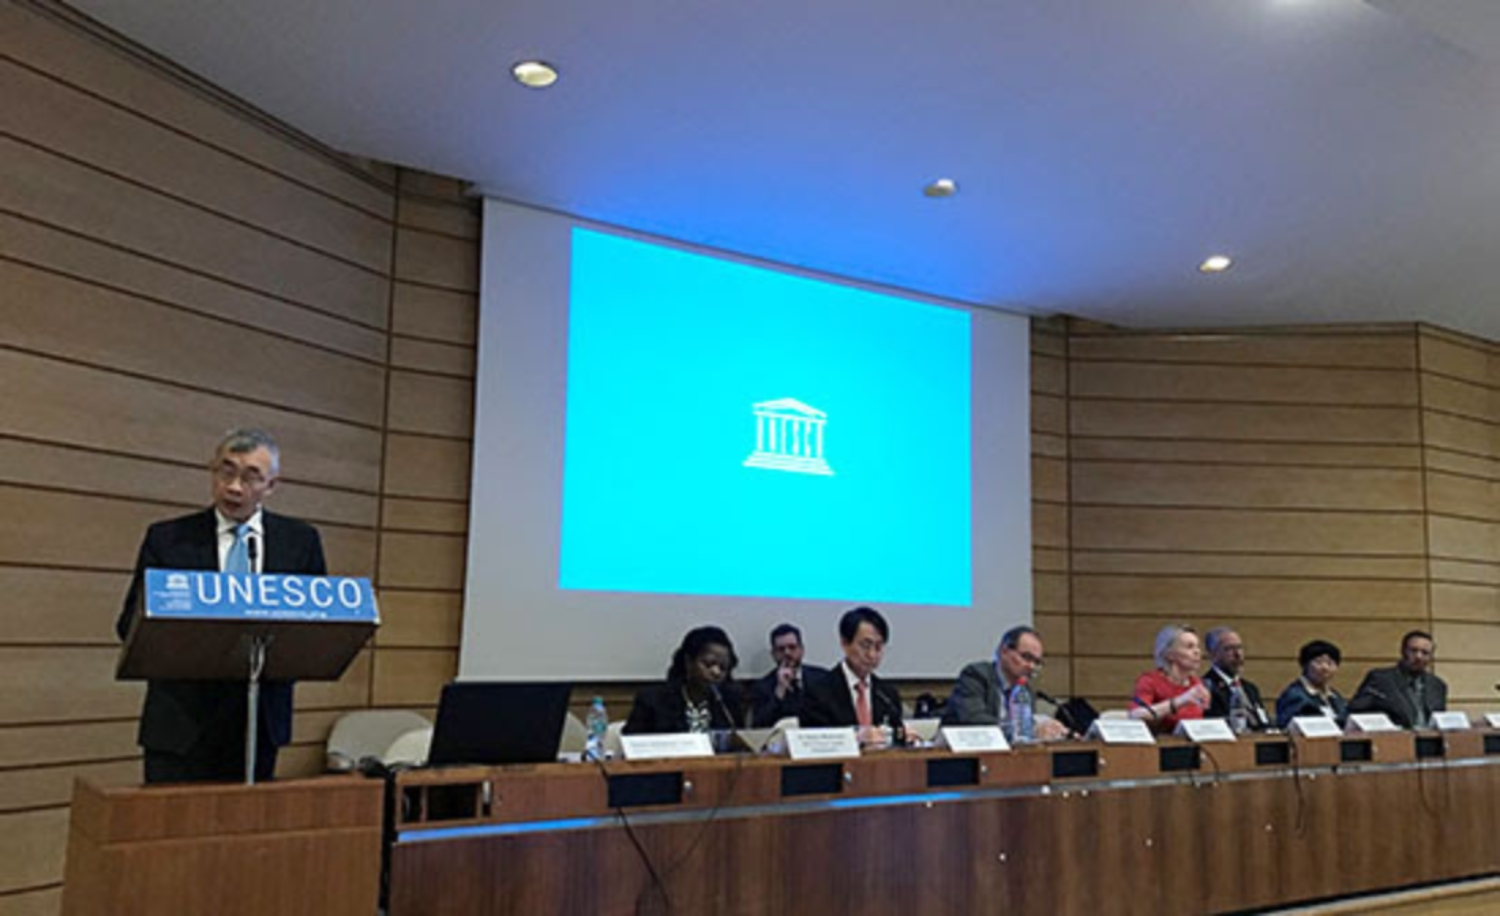 Mr Xiang Qu, UNESCO Deputy Director General with the members of the IGCP Council